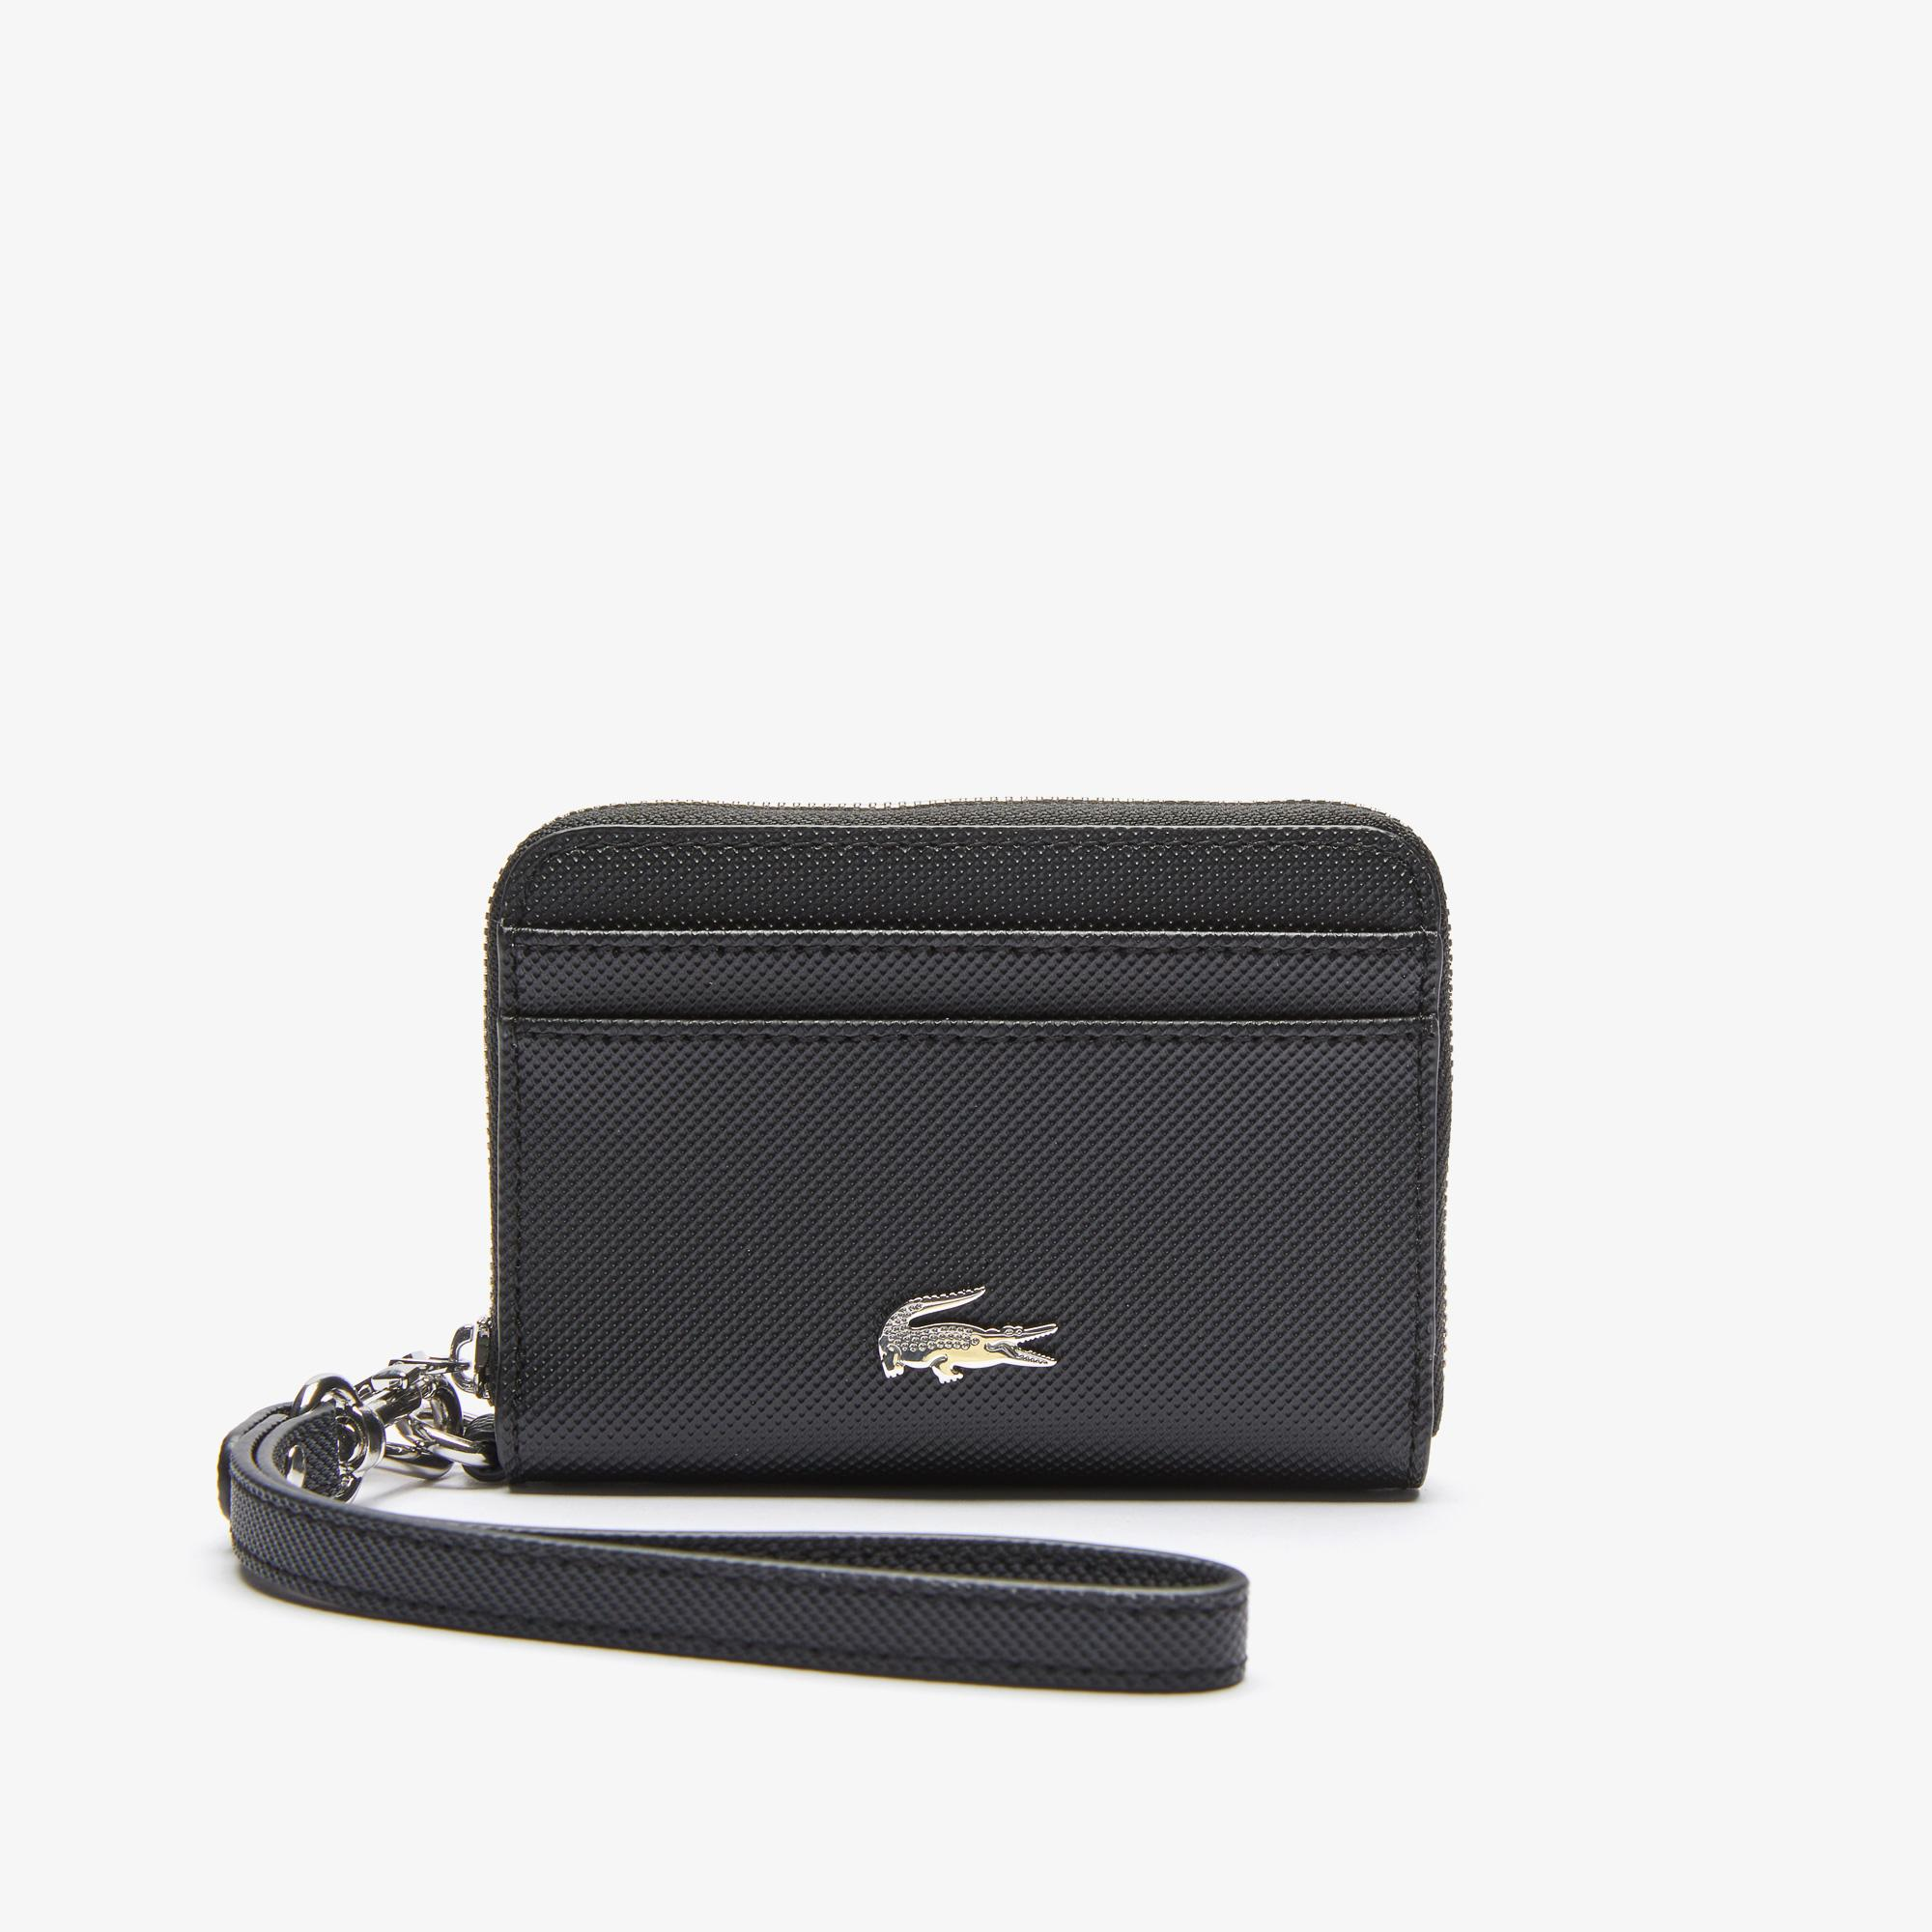 Lacoste Women's Daily Classic Small Coated Piqué Canvas Zip Wallet